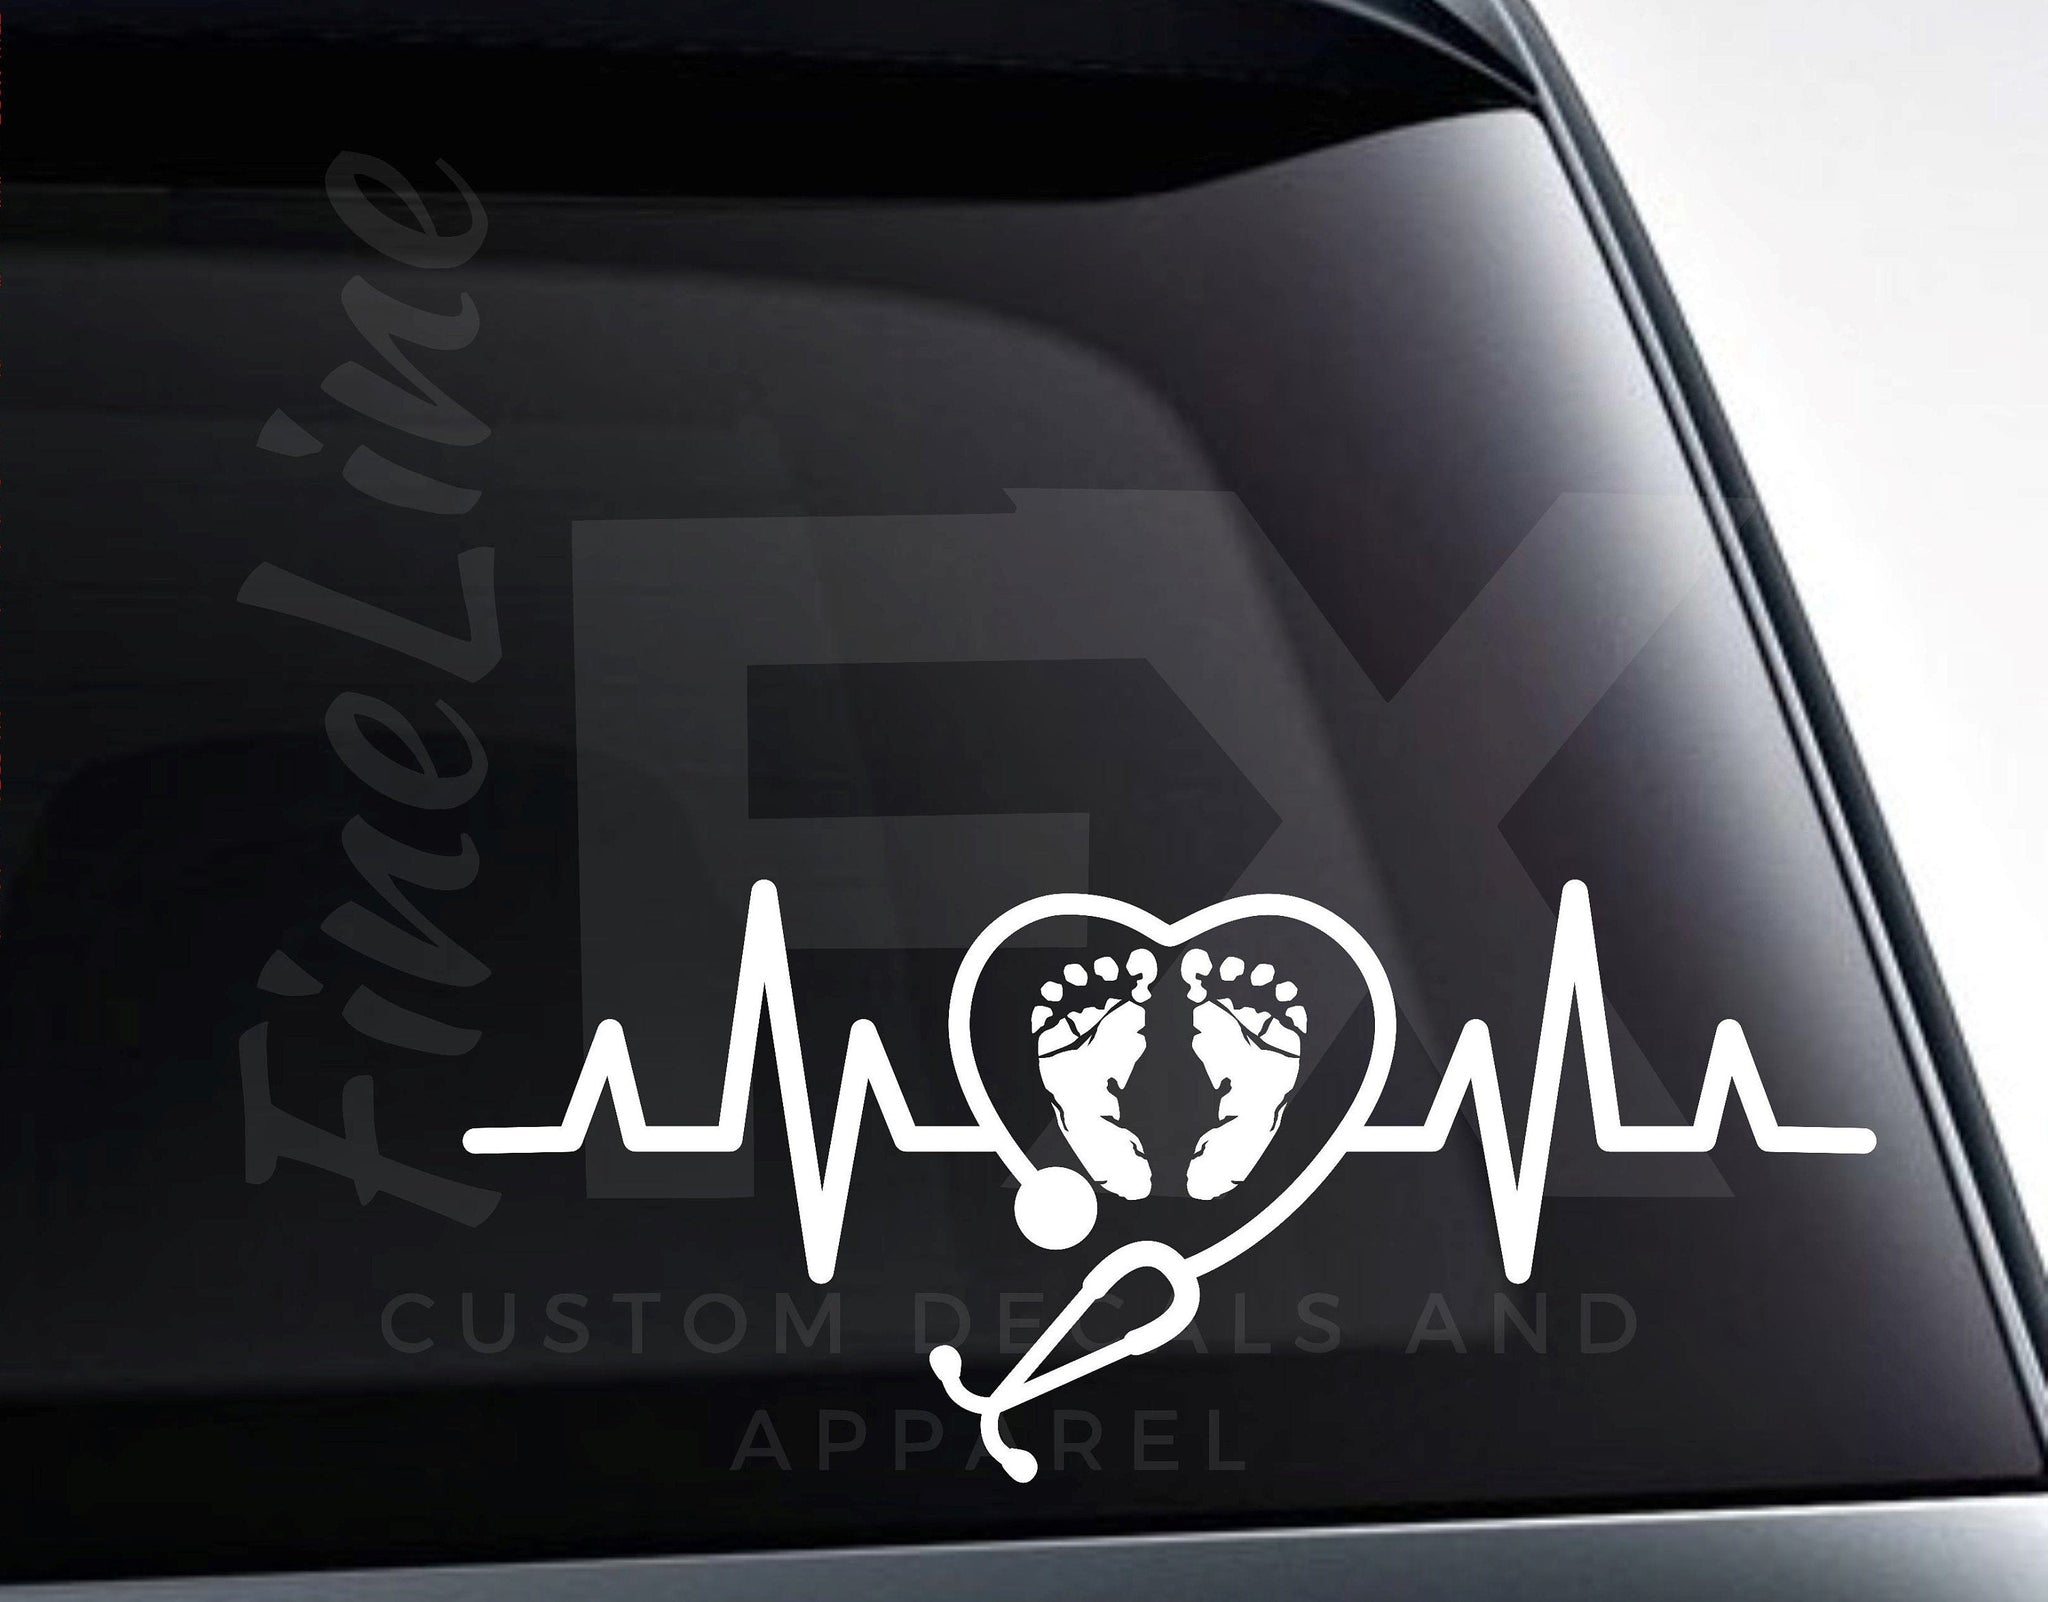 OB Nurse Stethoscope Obstetrician Baby Footprints Heartbeat Vinyl Decal Sticker